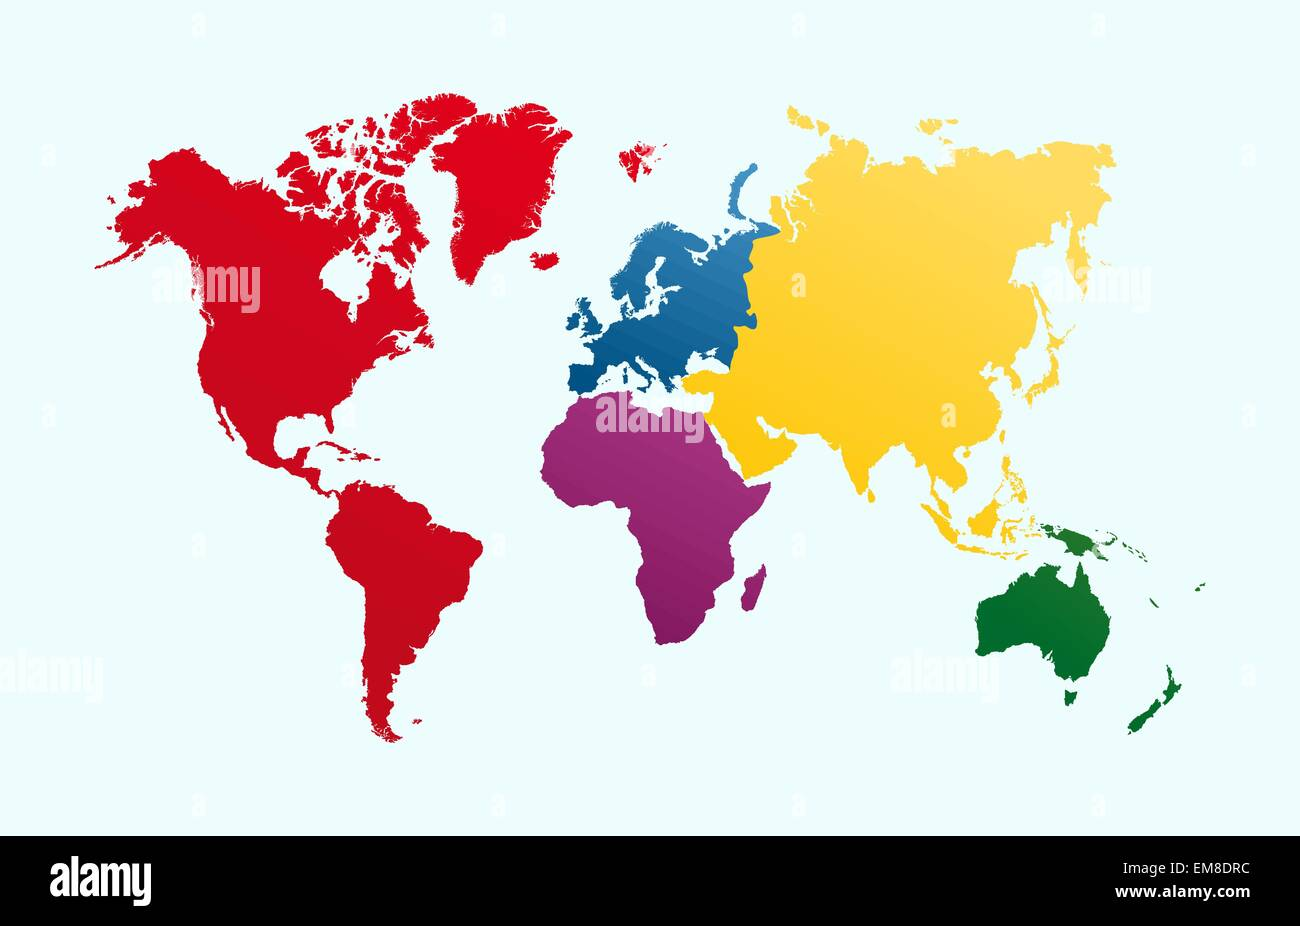 World map, colorful continents atlas EPS10 vector file. - Stock Image